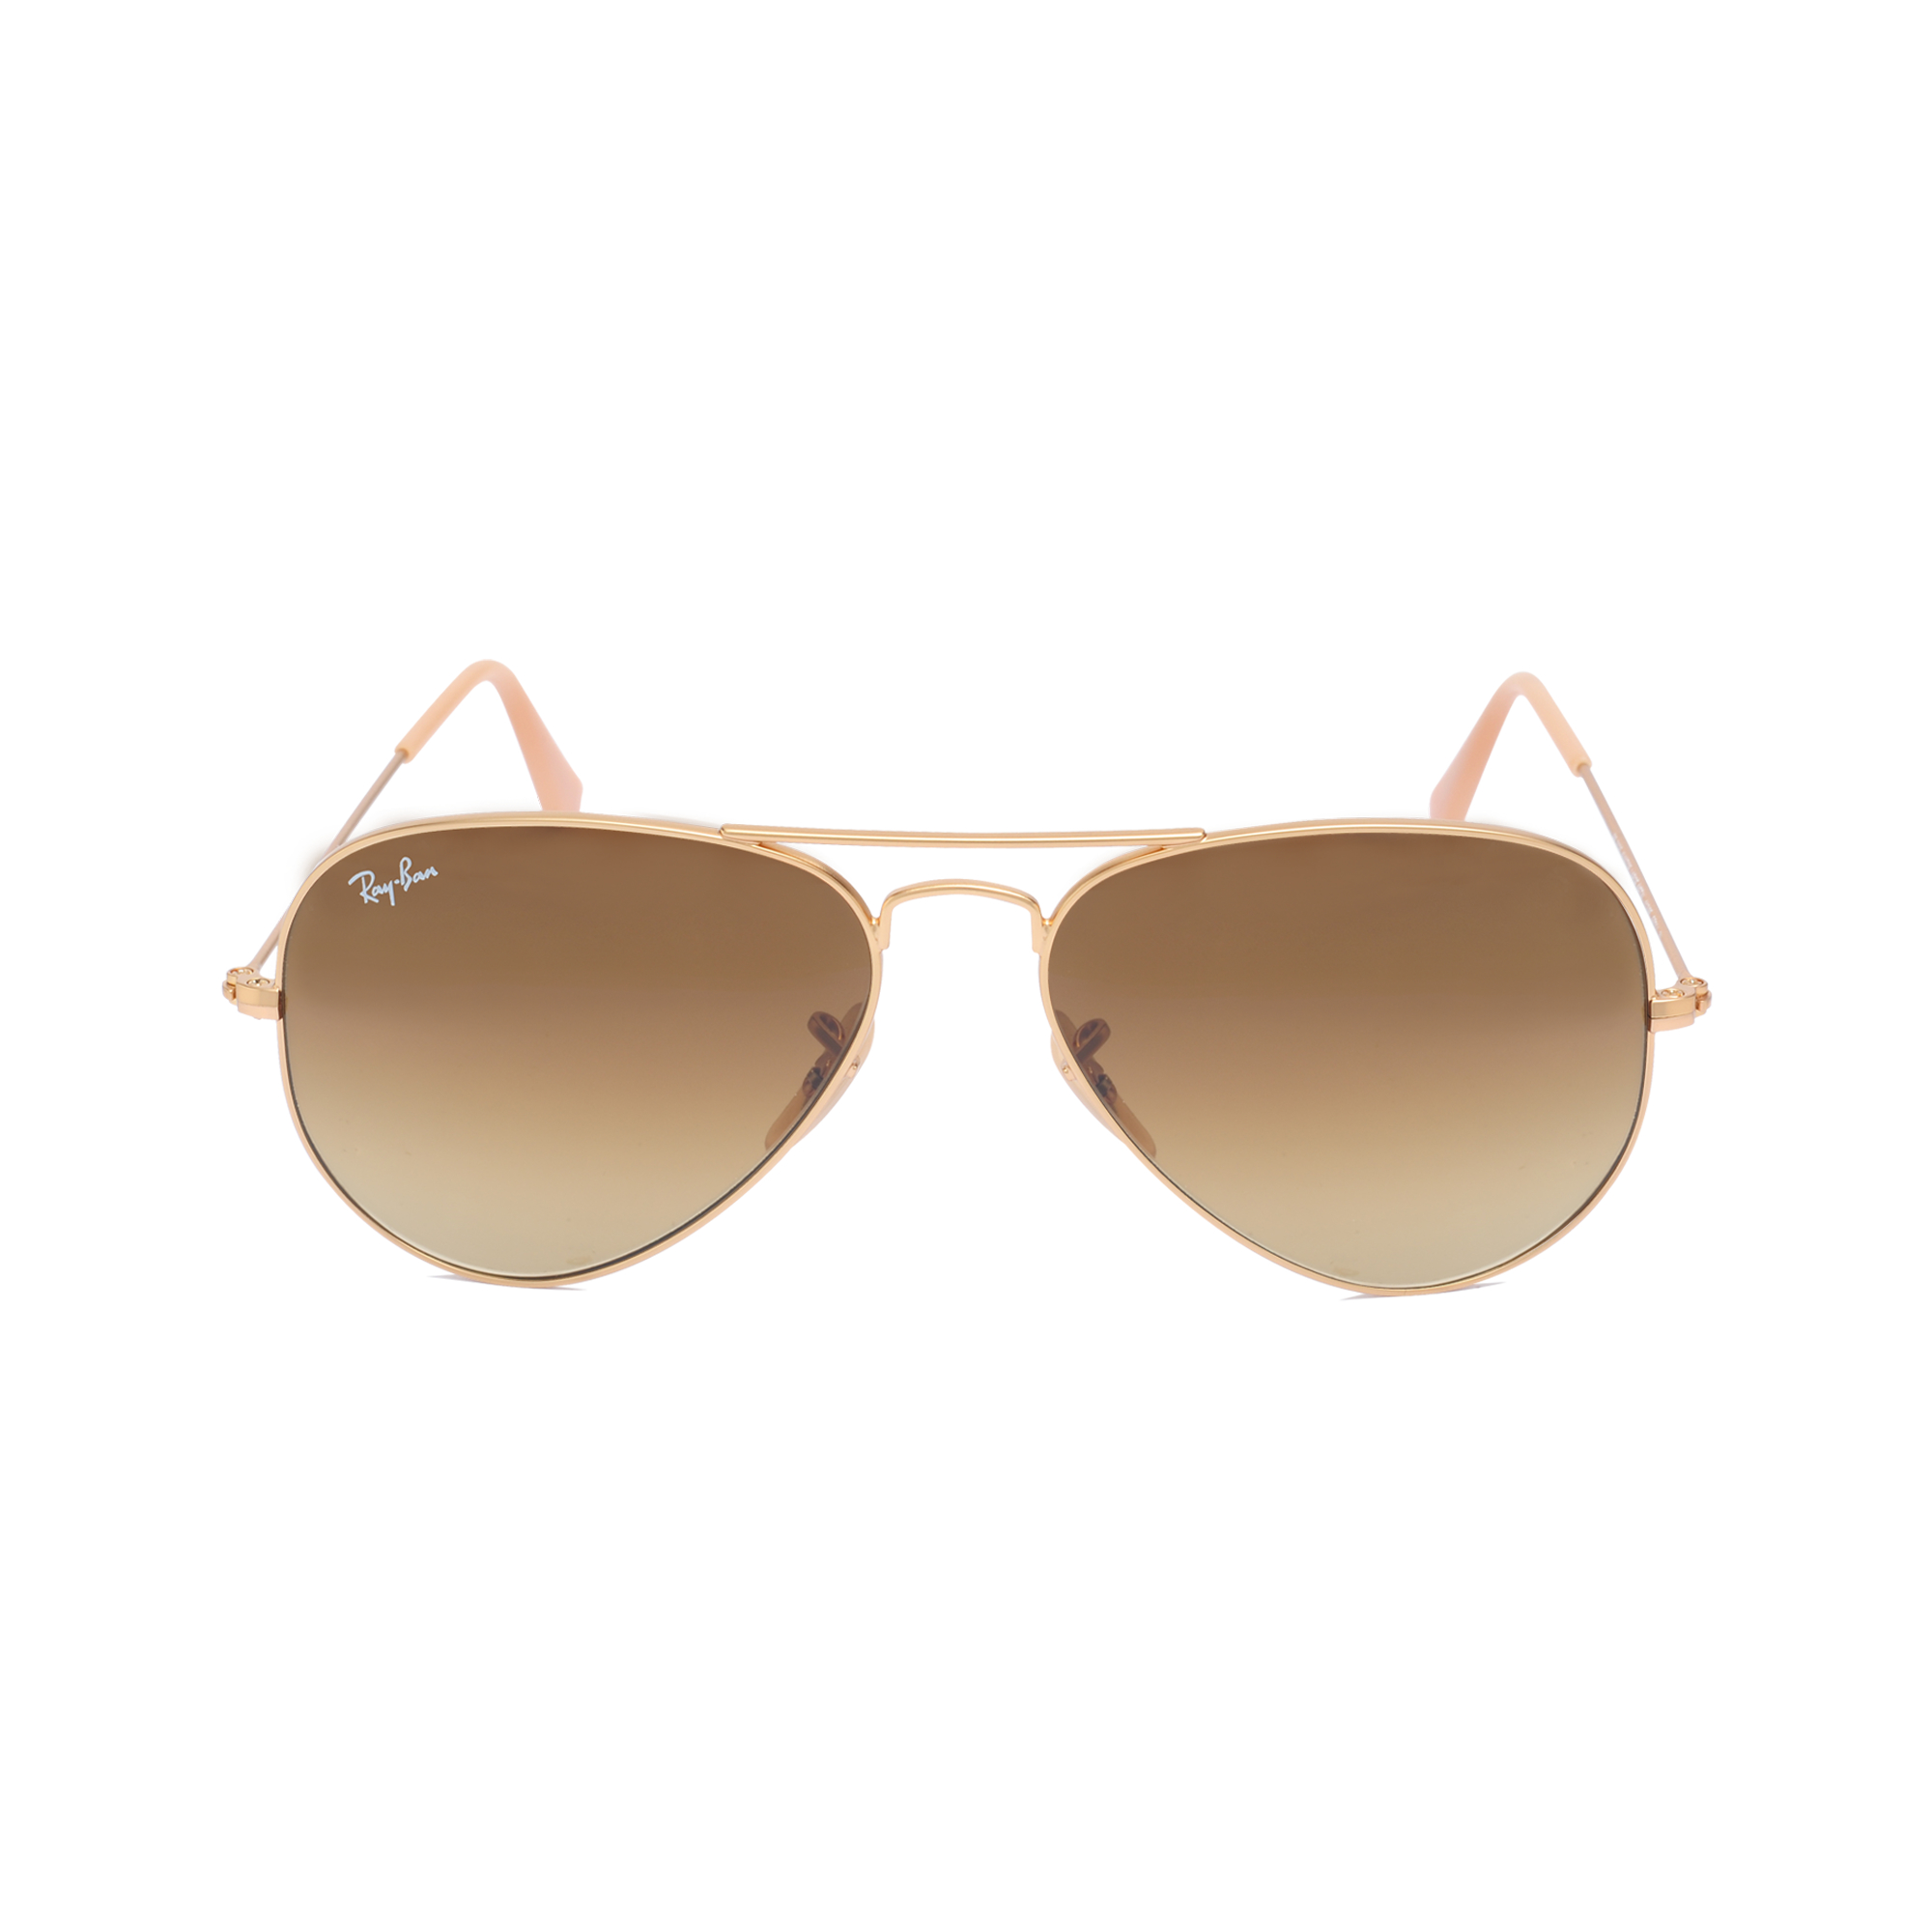 ray ban ray ban aviator 3025 sunglasses in gold lyst. Black Bedroom Furniture Sets. Home Design Ideas